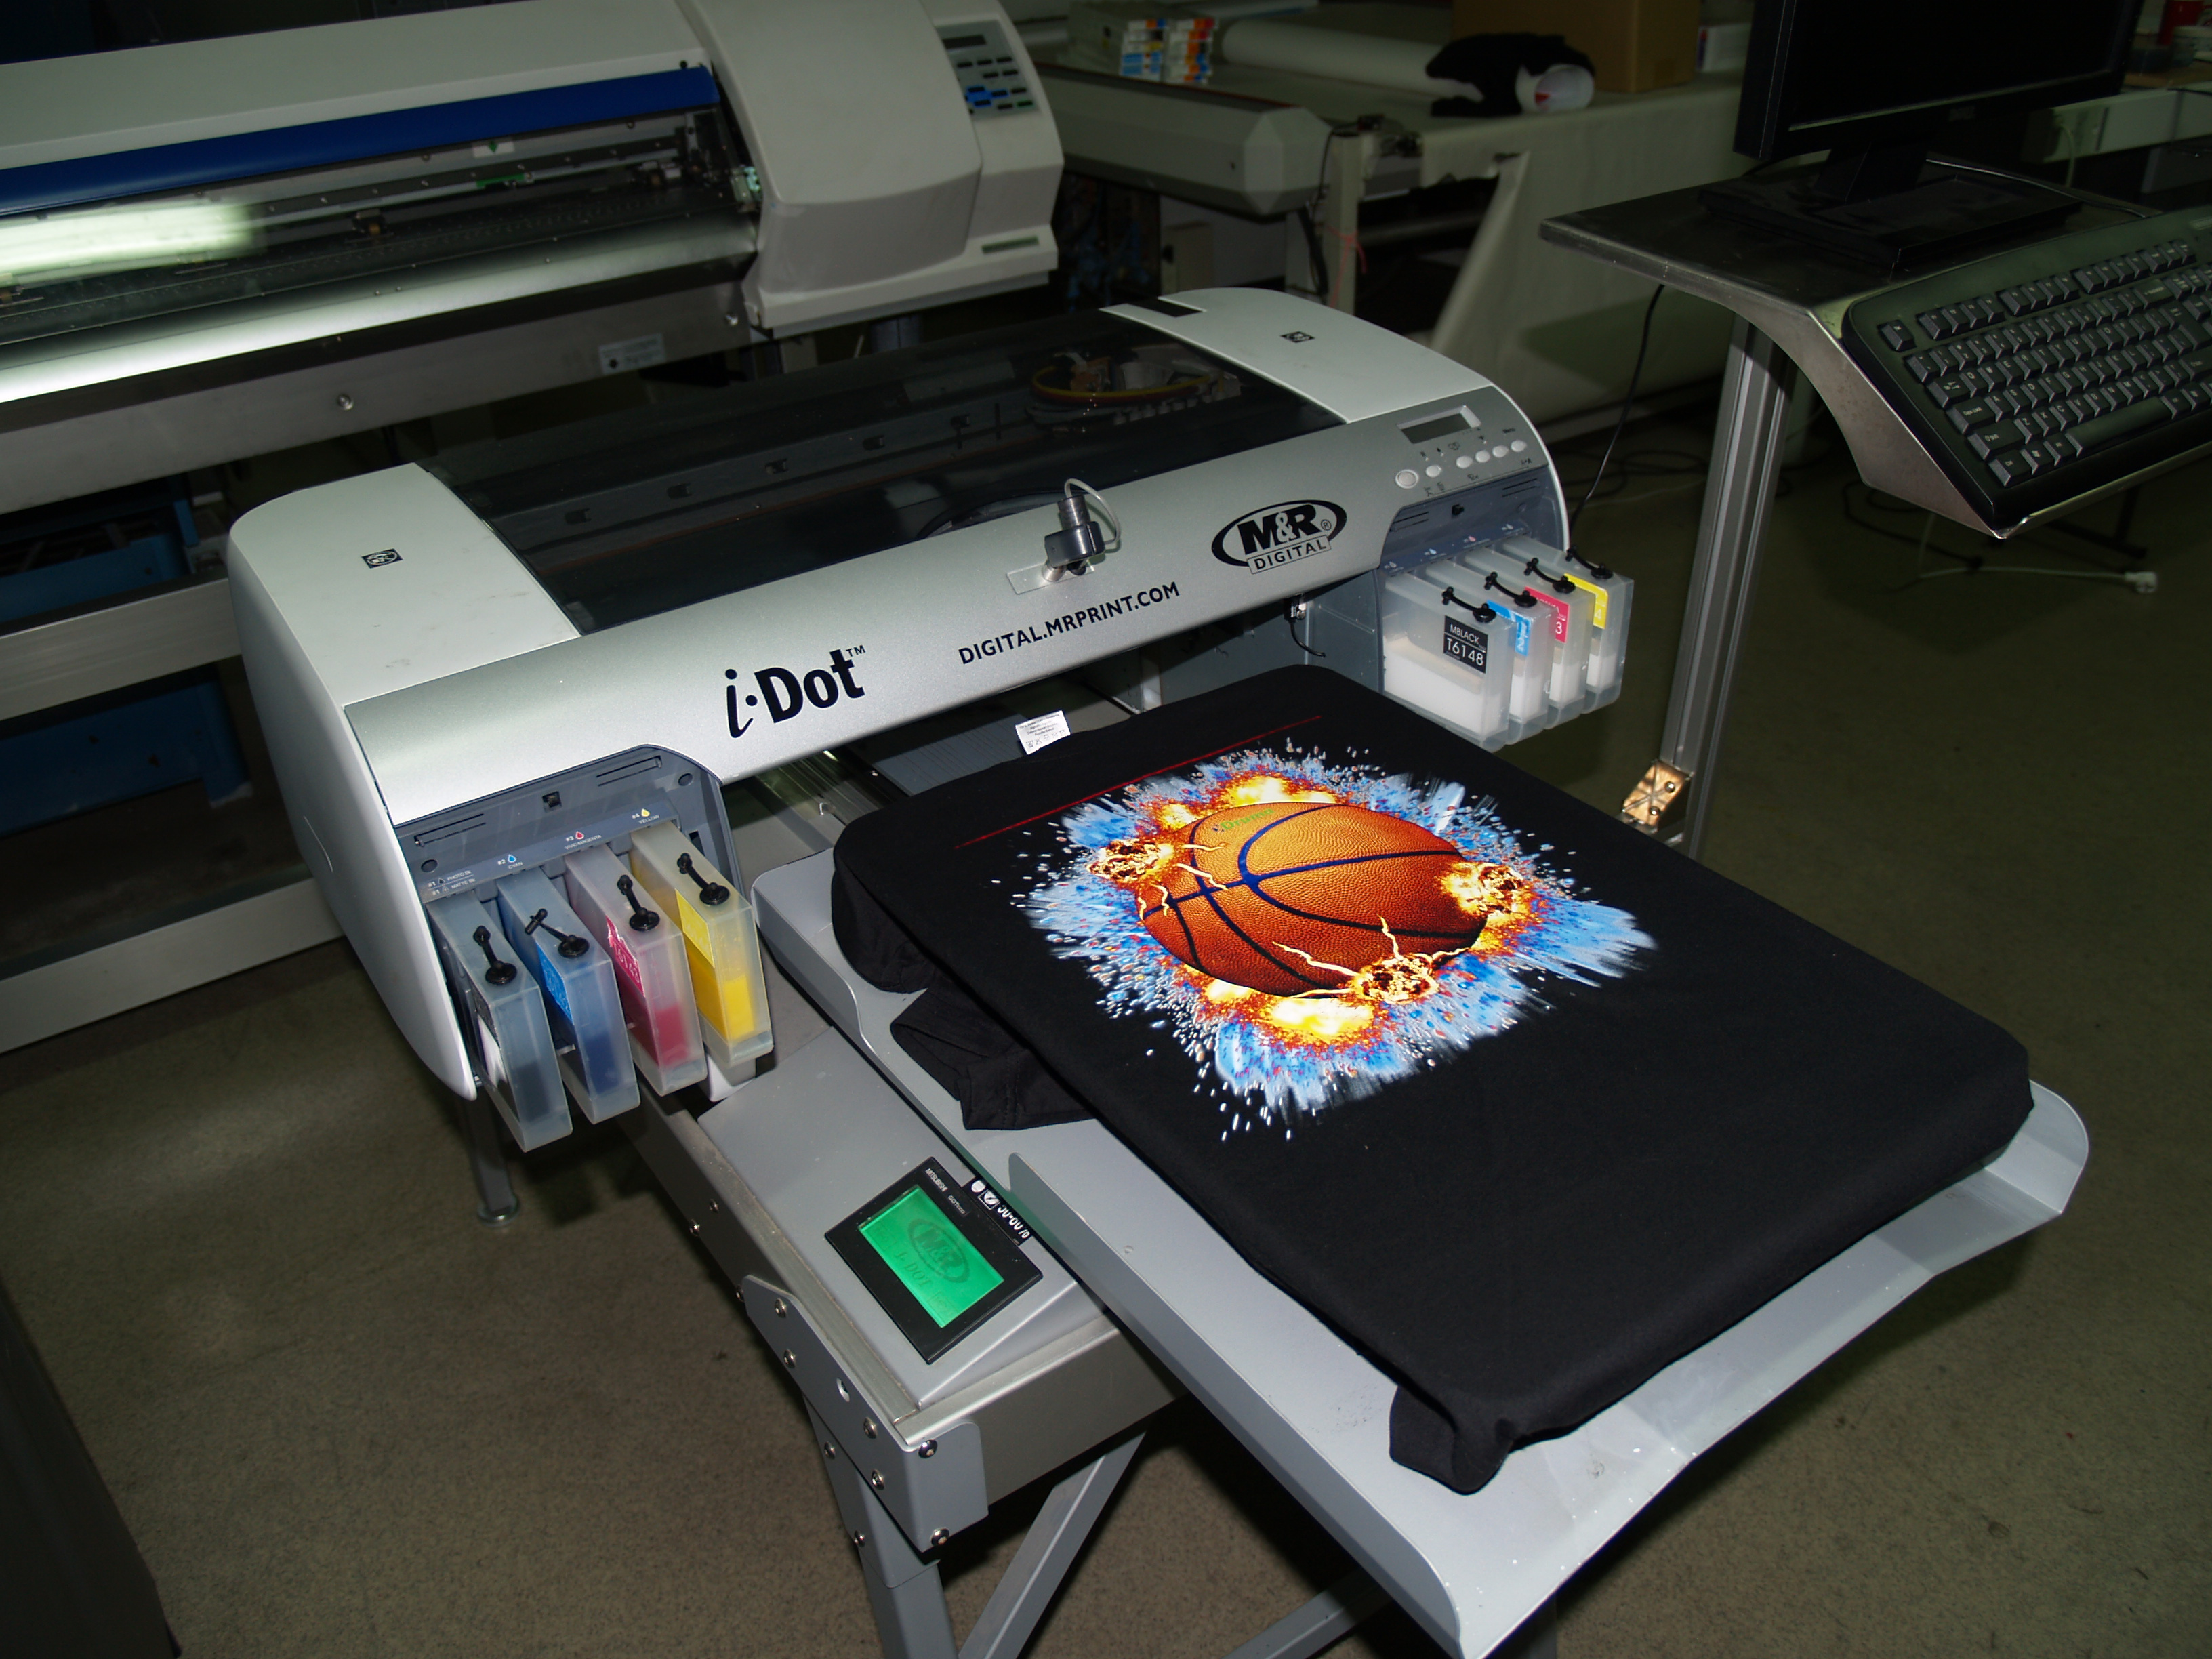 Used printer for t shirts i dot 2100 exapro for Machine for printing on t shirts